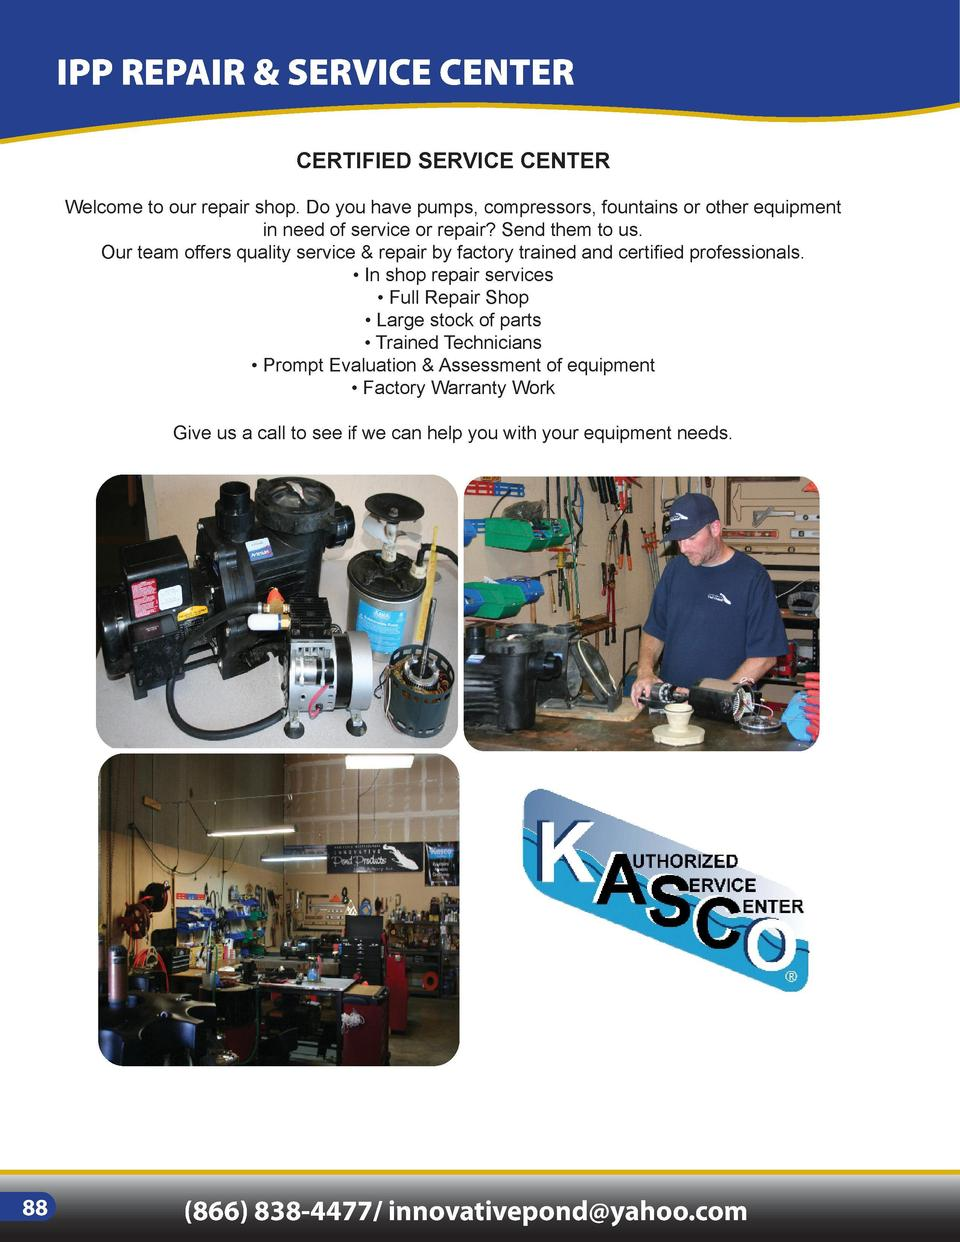 IPP REPAIR   SERVICE CENTER  FOUNTAIN NOZZLES  CERTIFIED SERVICE CENTER Welcome to our repair shop. Do you have pumps, com...